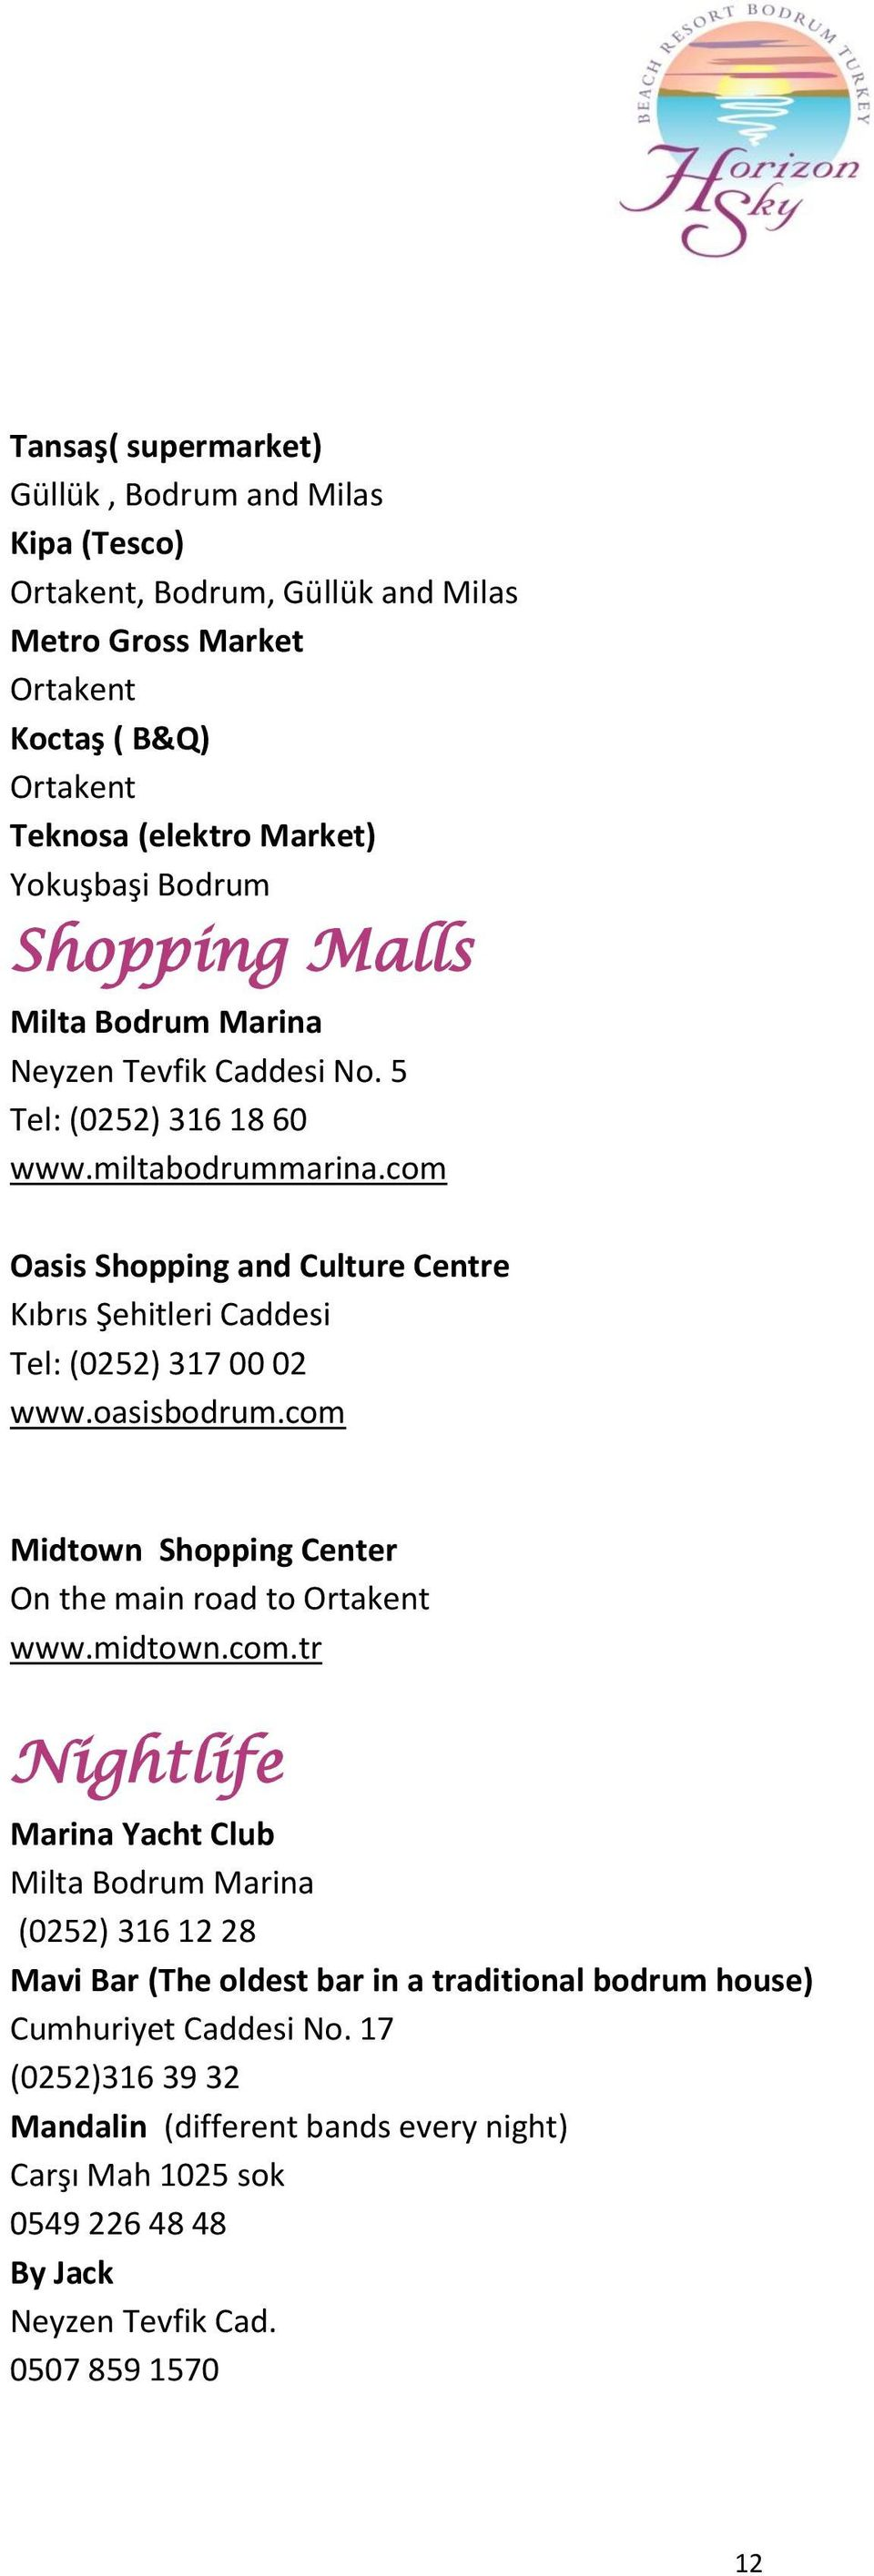 com Oasis Shopping and Culture Centre Kıbrıs Şehitleri Caddesi Tel: (0252) 317 00 02 www.oasisbodrum.com Midtown Shopping Center On the main road to Ortakent www.midtown.com.tr Nightlife Marina Yacht Club Milta Bodrum Marina (0252) 316 12 28 Mavi Bar (The oldest bar in a traditional bodrum house) Cumhuriyet Caddesi No.